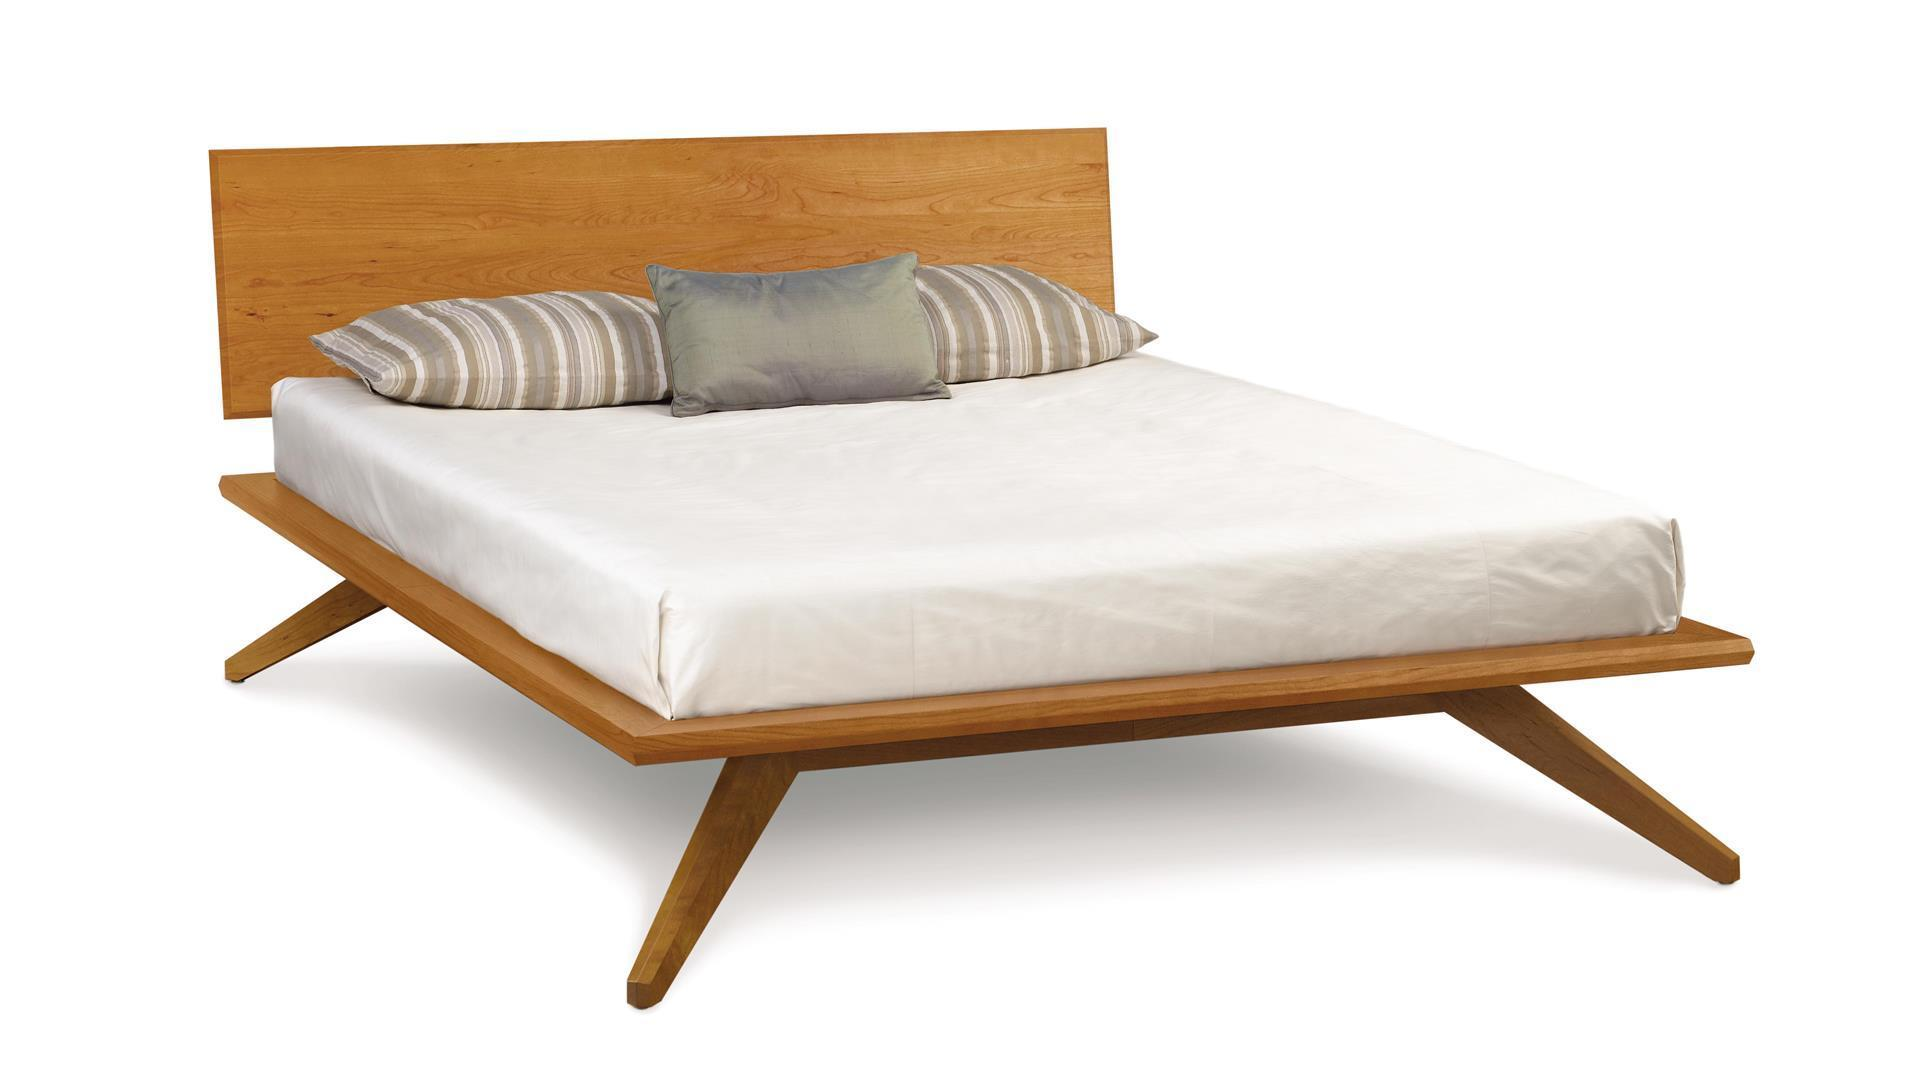 Copeland Astrid Bed with One Adjustable Headboard Panel